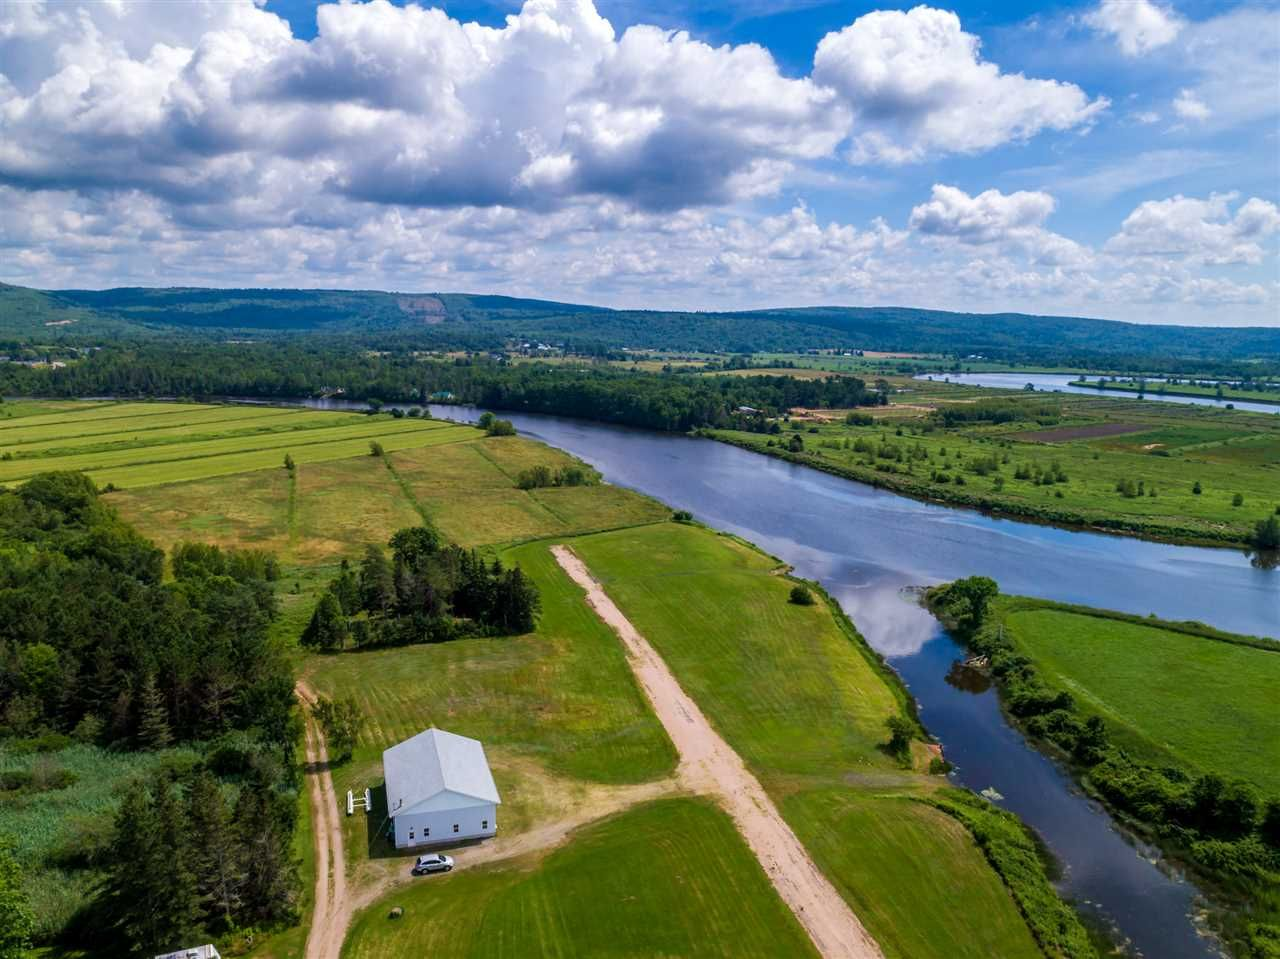 Main Photo: 7858 Highway 1 in Upper Granville: 400-Annapolis County Residential for sale (Annapolis Valley)  : MLS®# 202014278